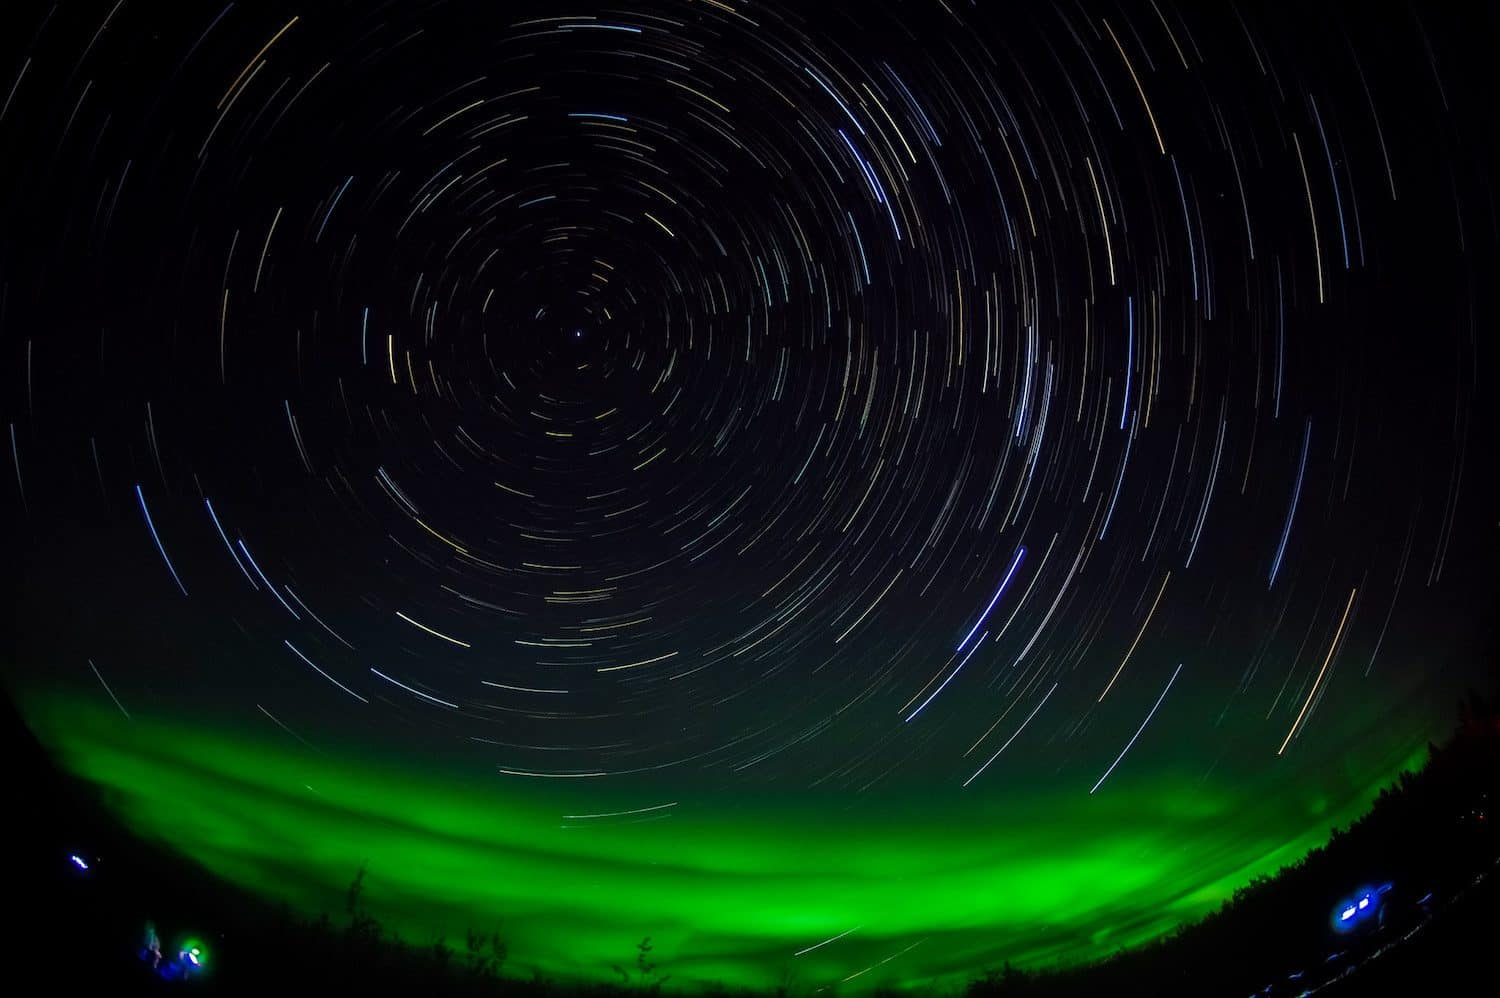 How to See the Northern Lights - Aurora and Star Trails in the Yukon - Naoki Natsume/Ishii via Flickr